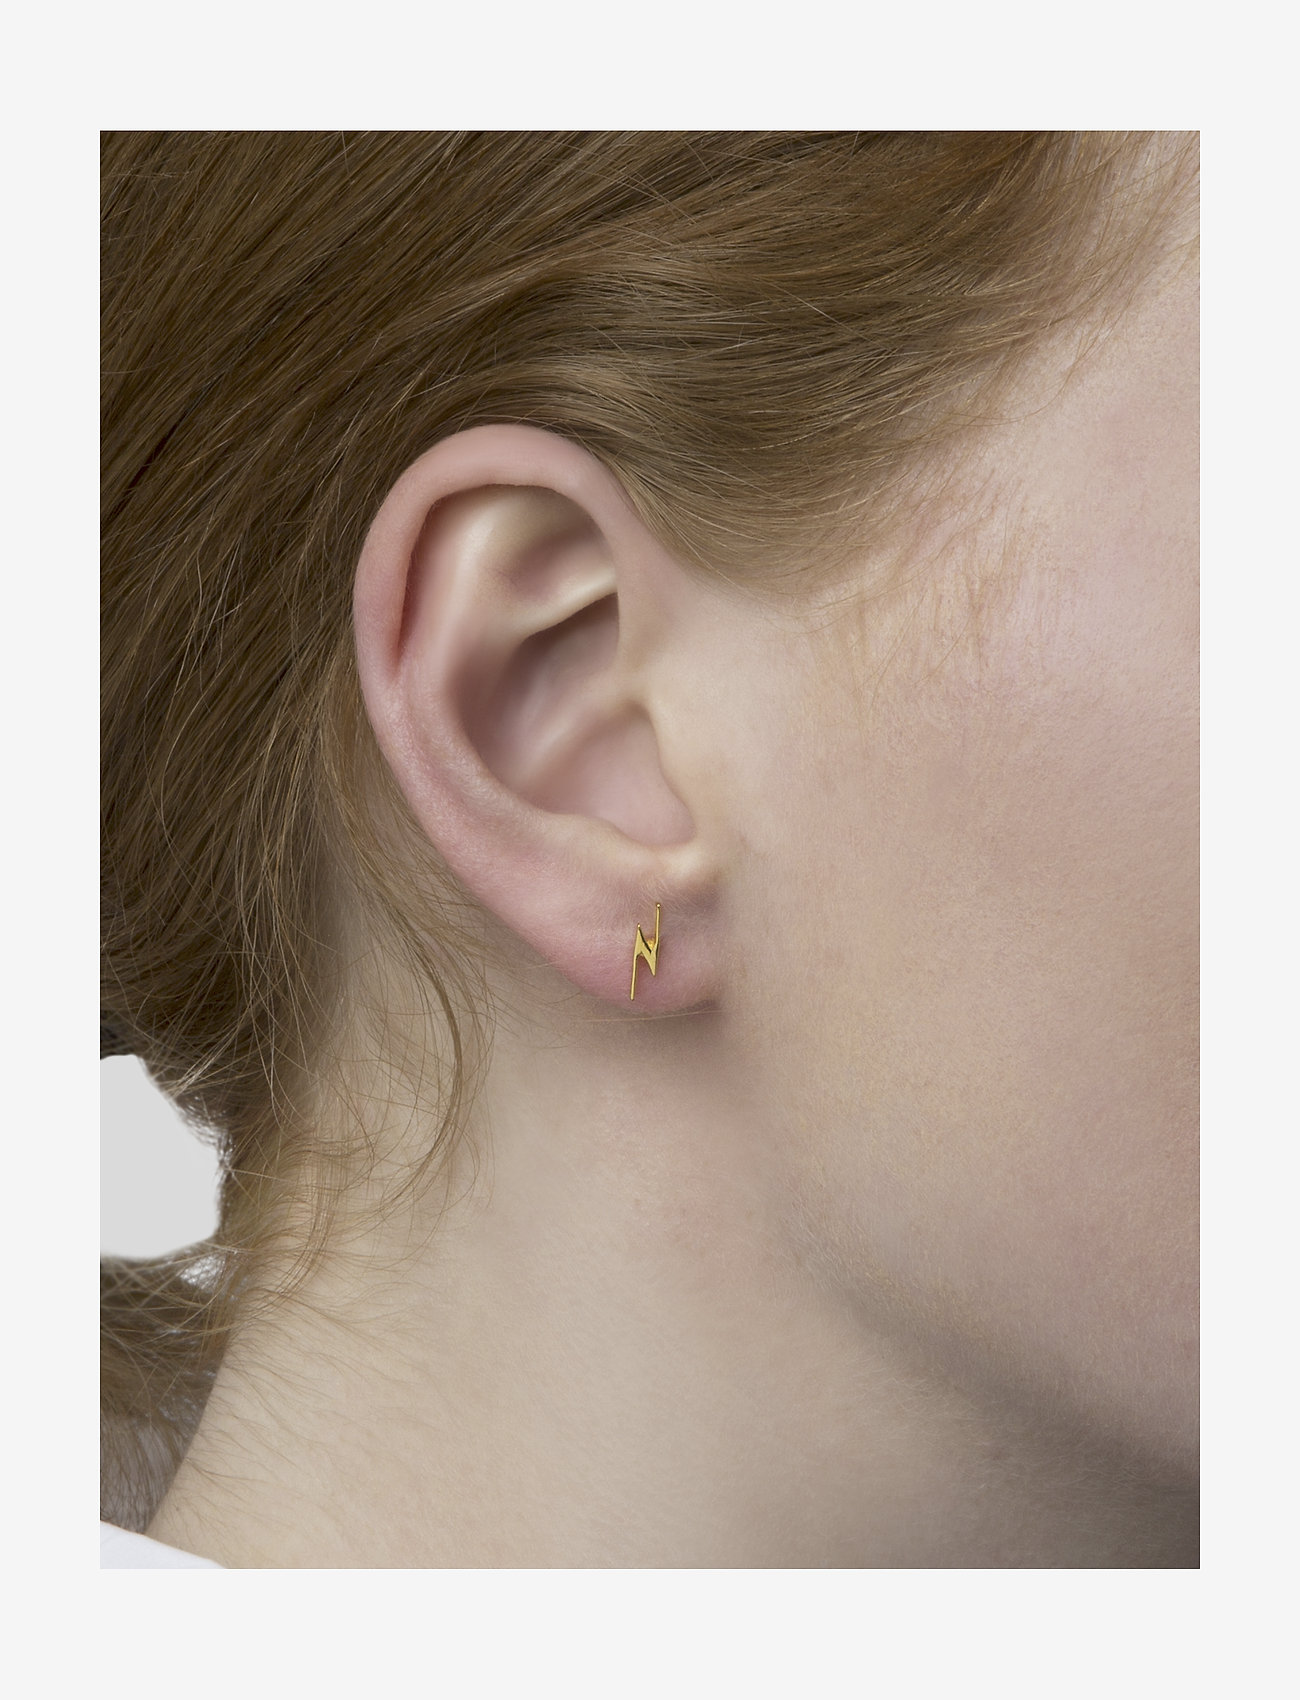 Snap Earrings Flash Gold (Gold) (49 €) - Syster P R5RL5